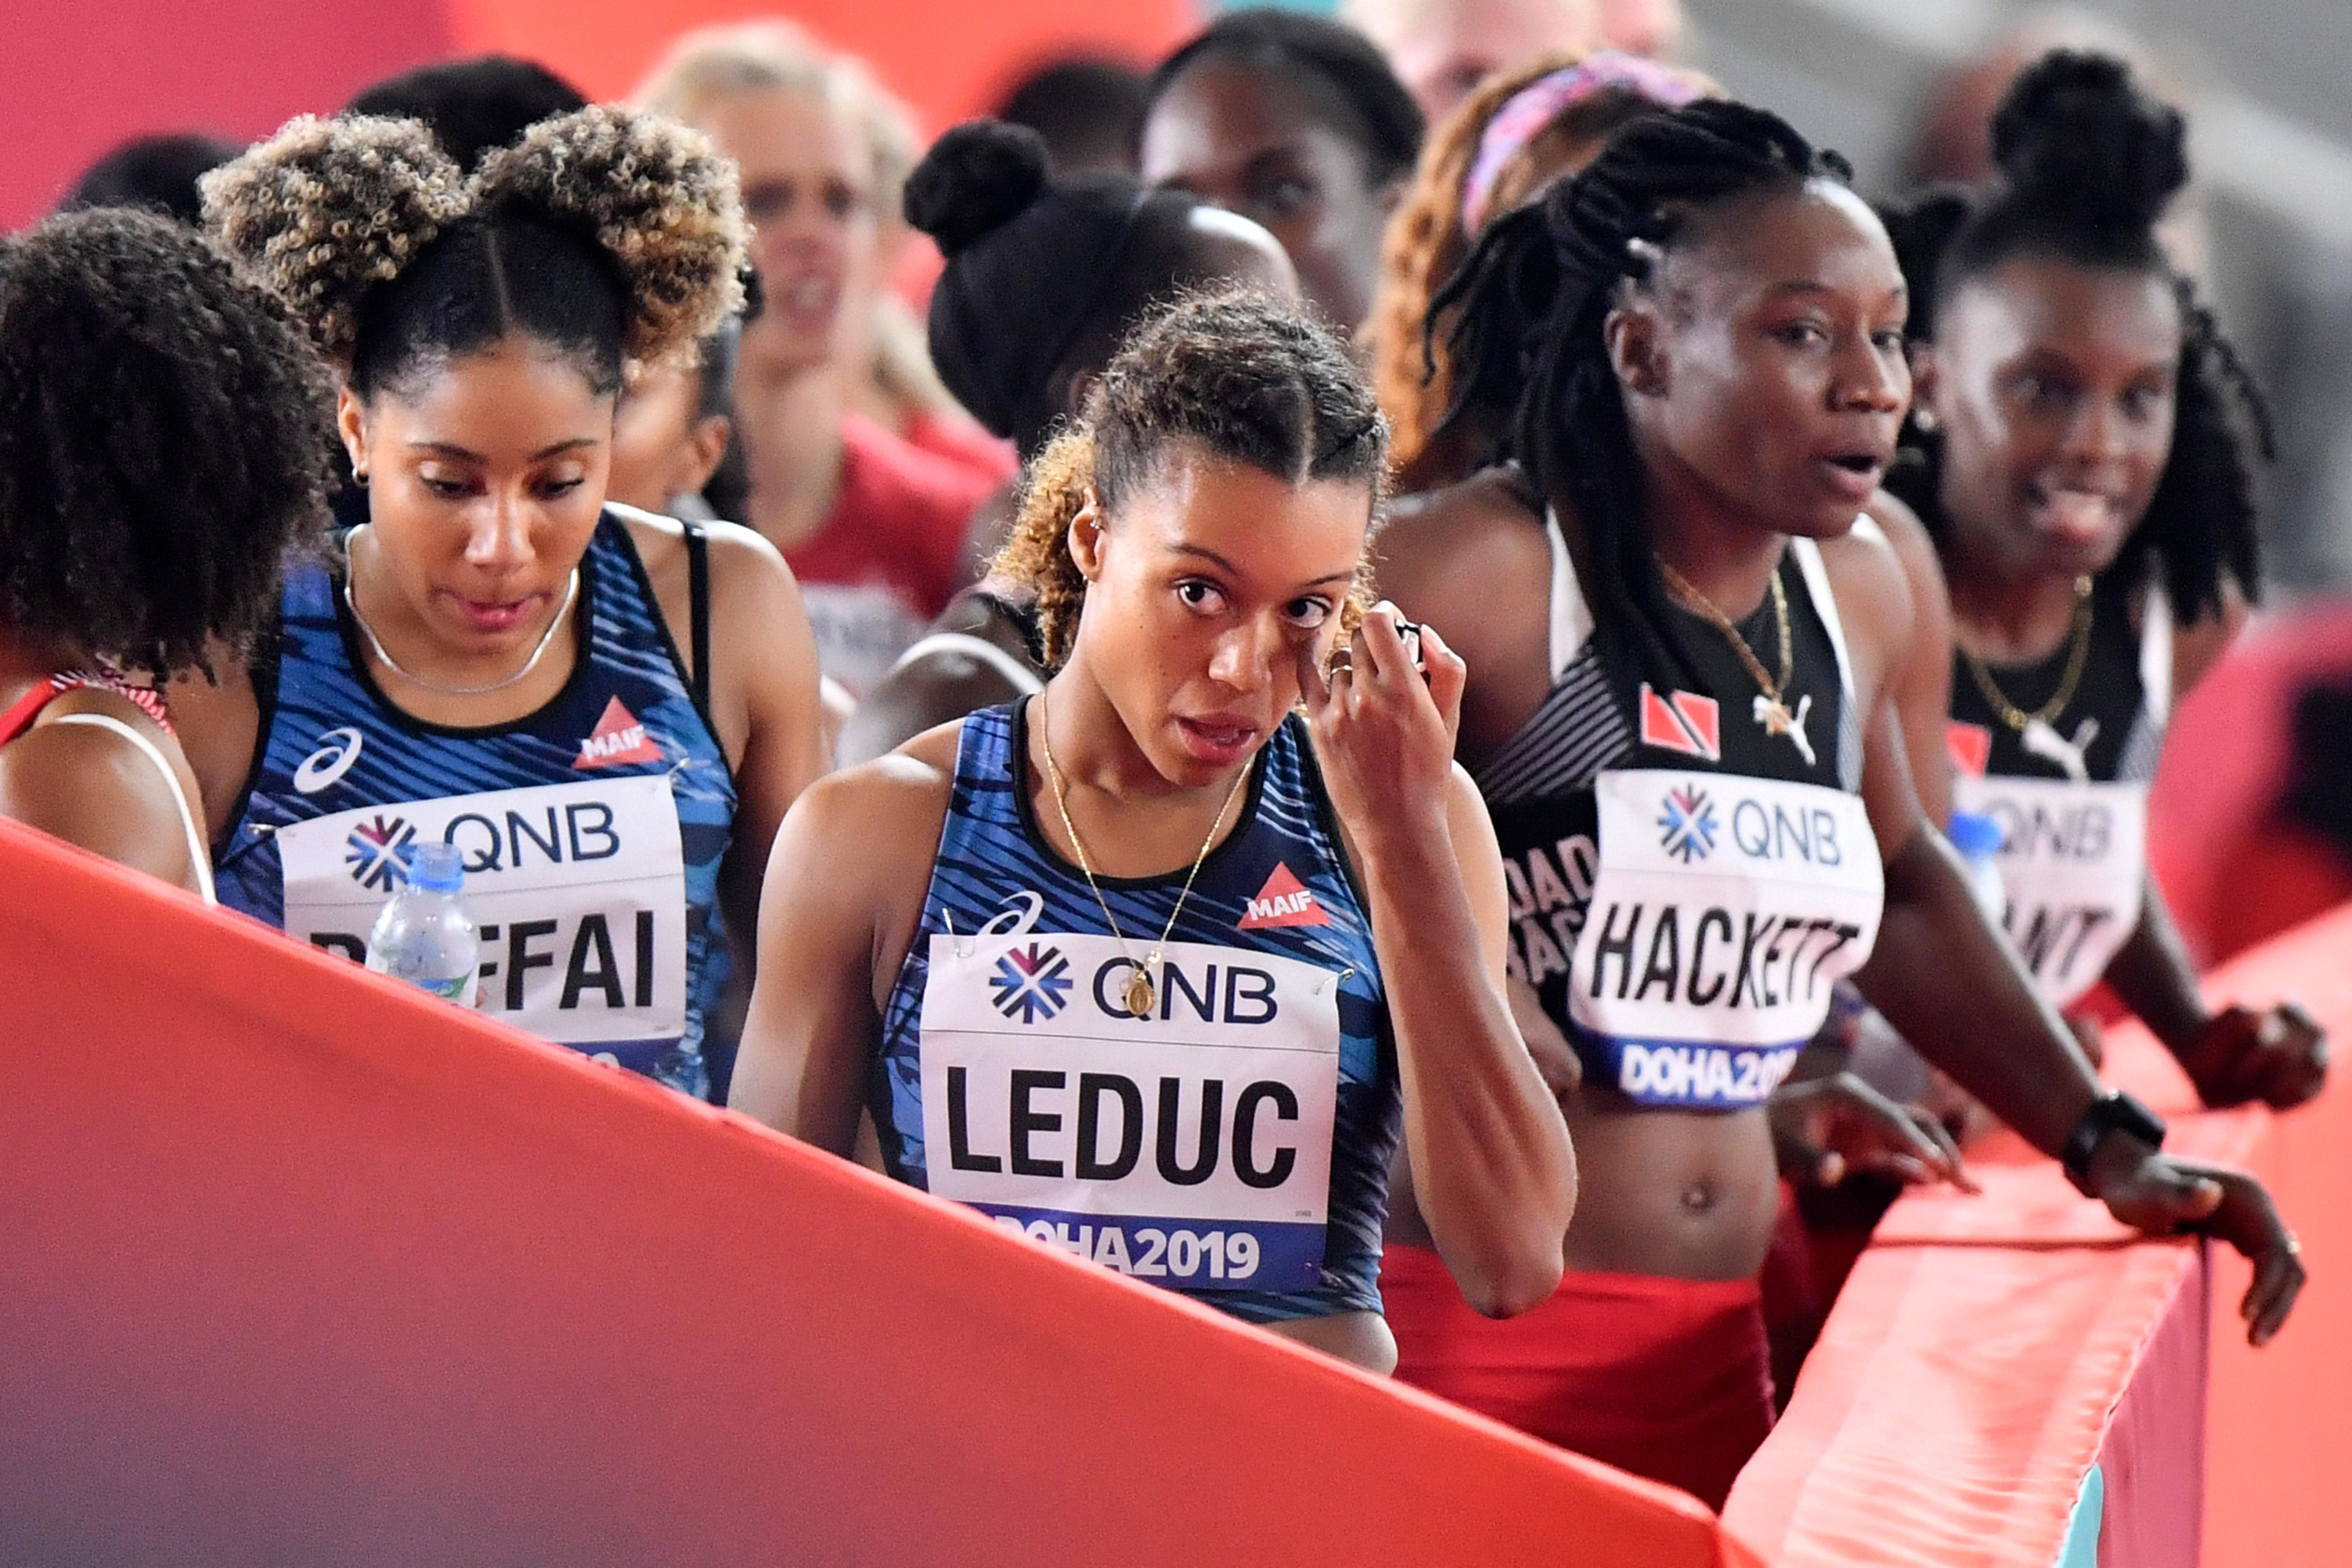 France's Cynthia Leduc, center, and Estelle Raffai, left, leave after their disqualification in the women's 4x100 meter relay at the World Athletics Championships in Doha, Qatar, Friday, Oct. 4, 2019. (AP Photo/Martin Meissner)